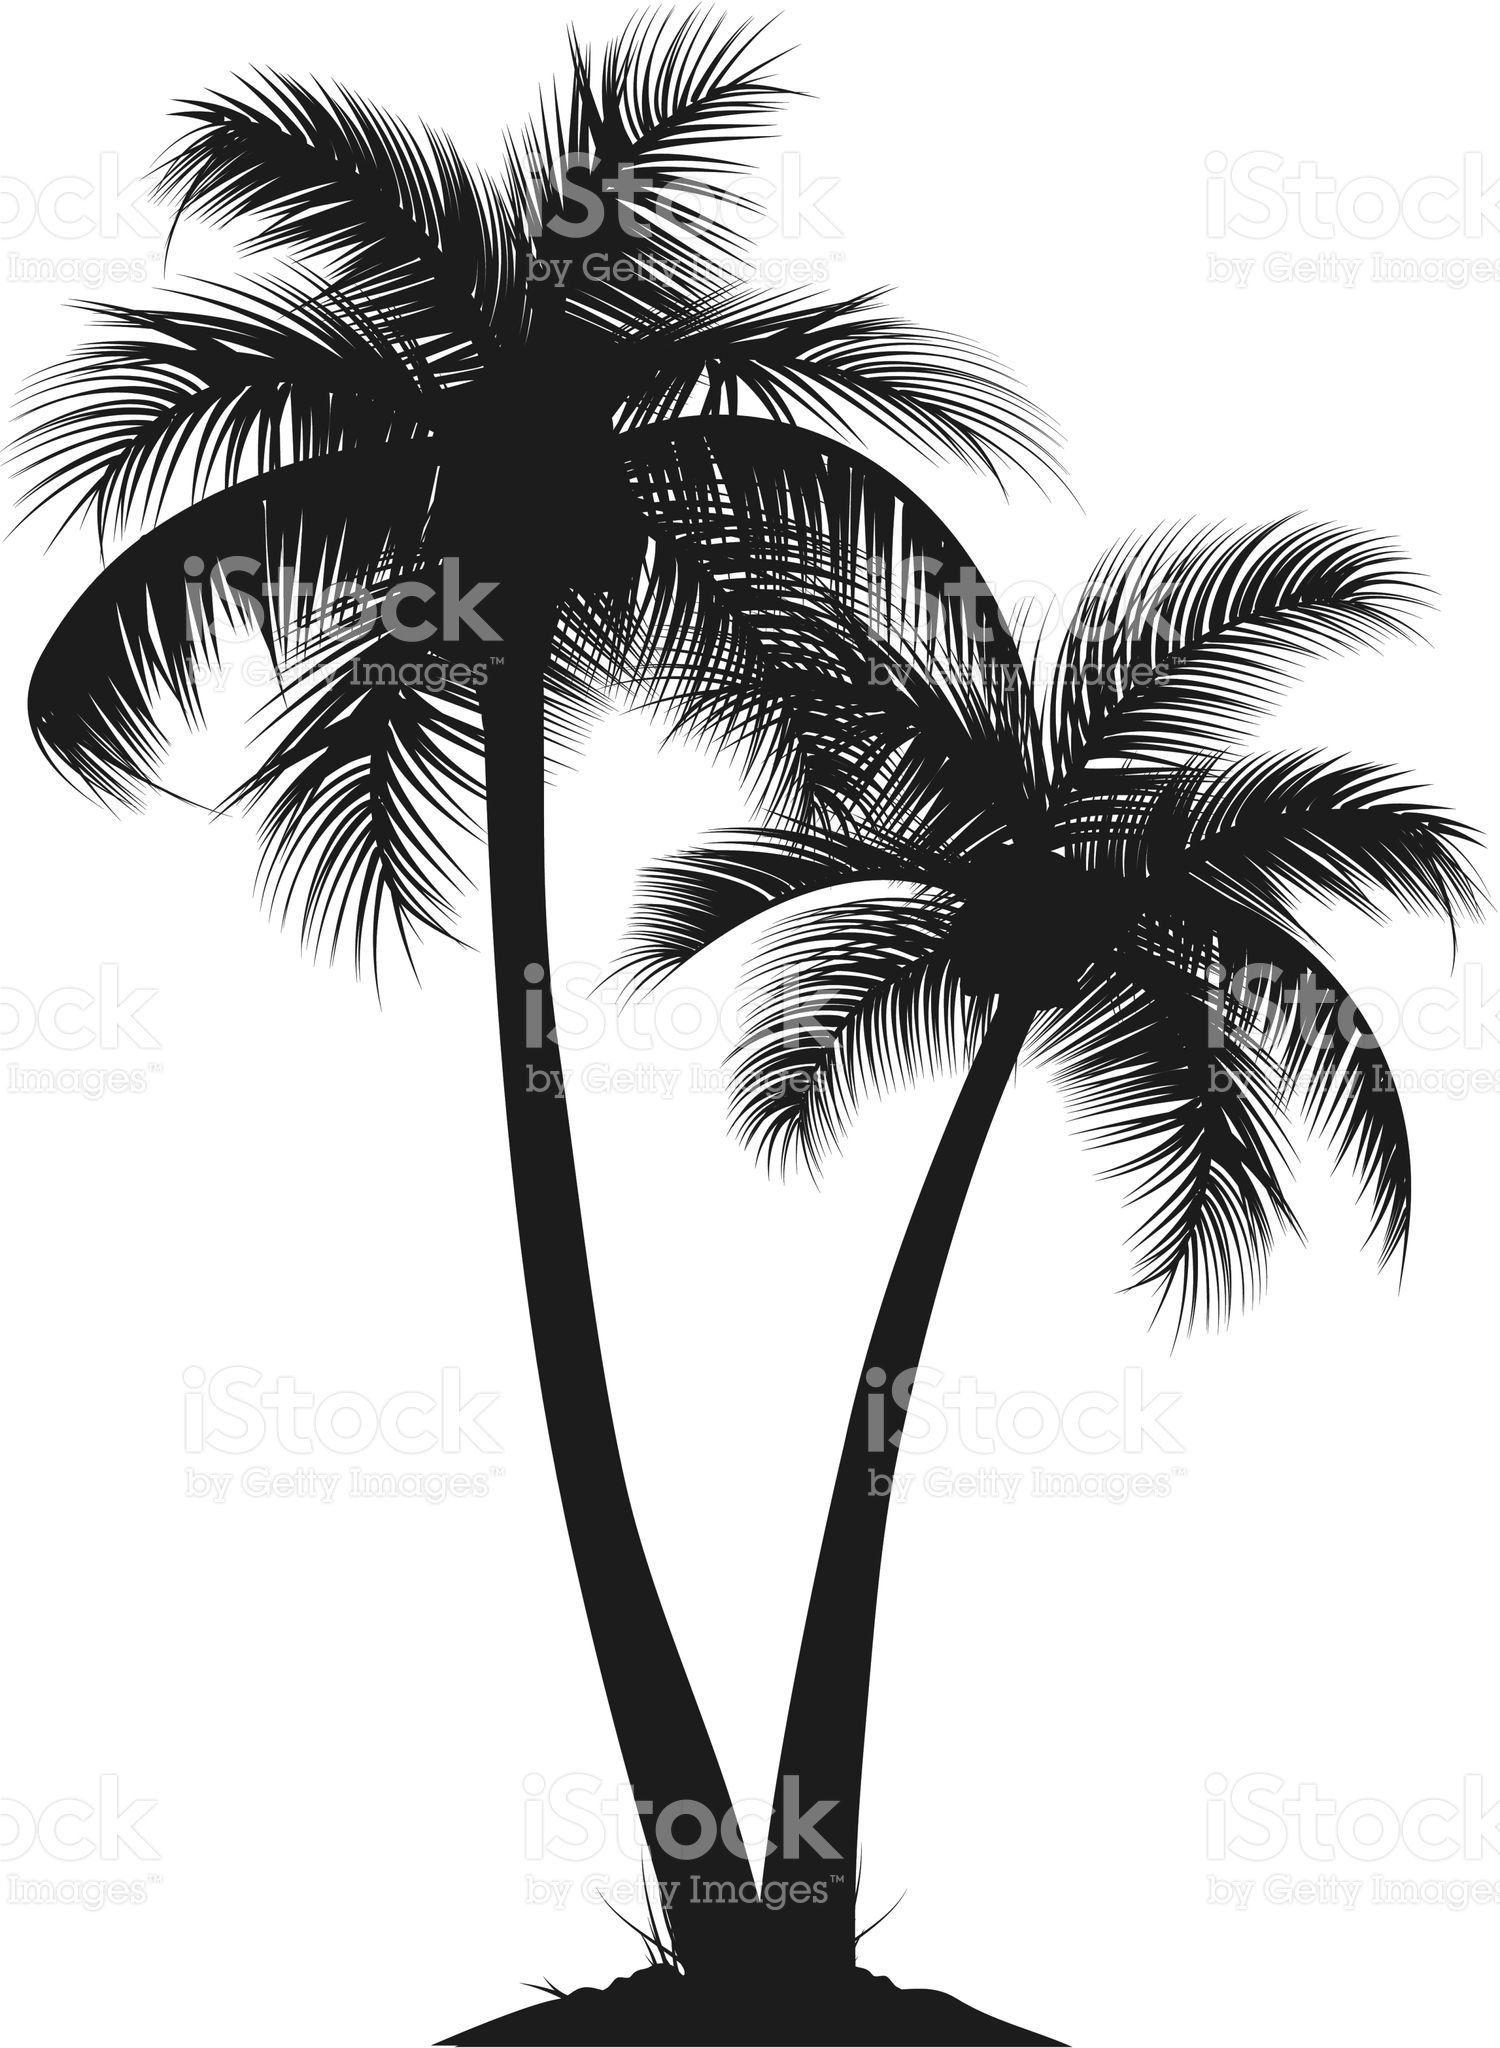 two vector Silhouette of palm trees. smart layers and